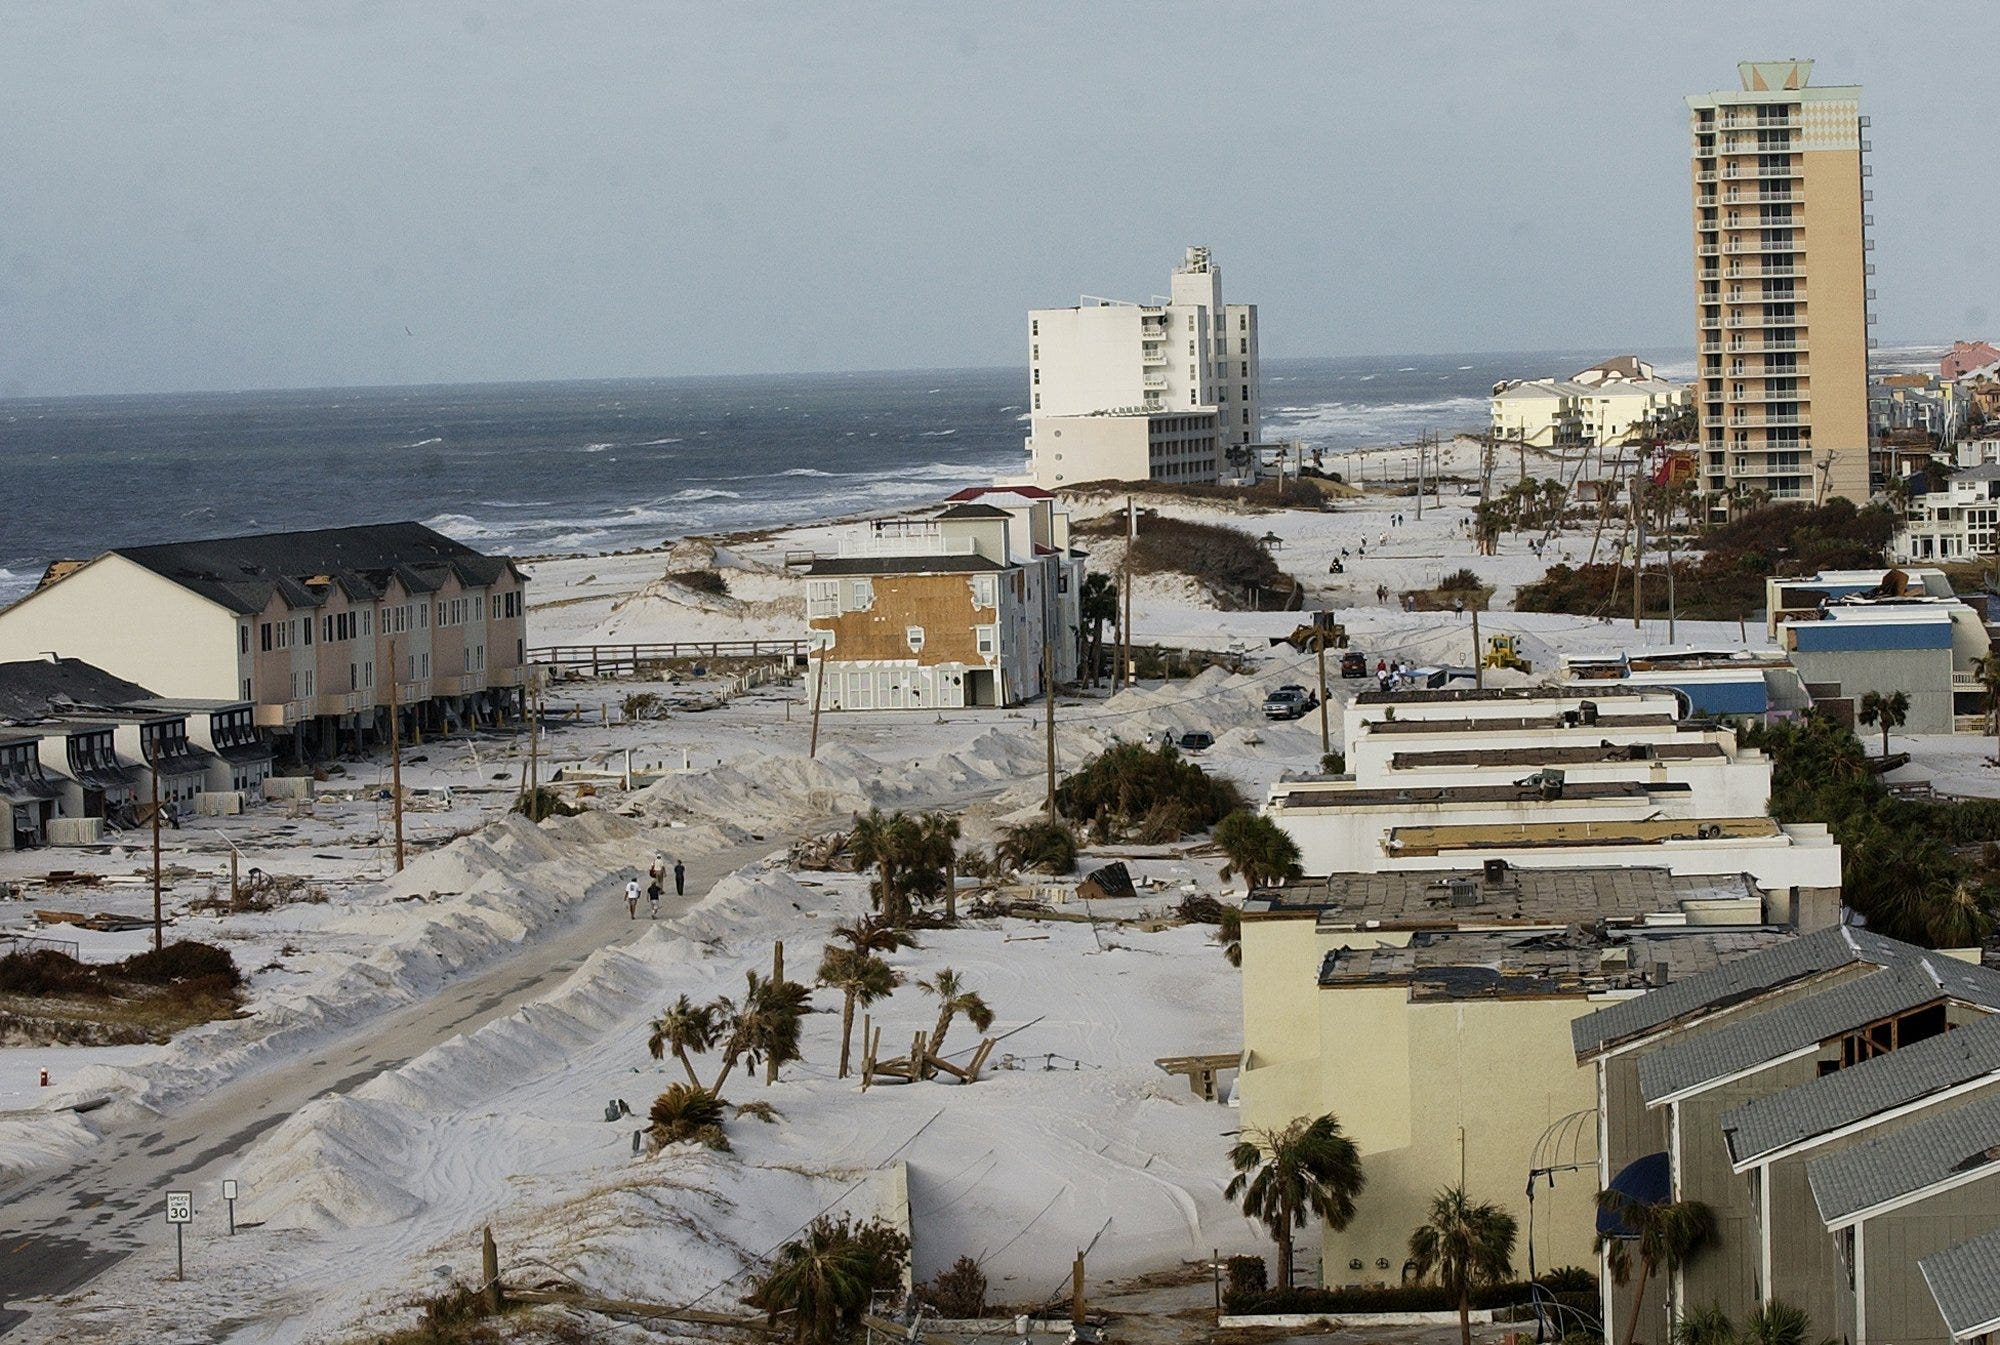 Hurricane Sally hit exactly 16 years after Ivan, even making landfall at the same spot